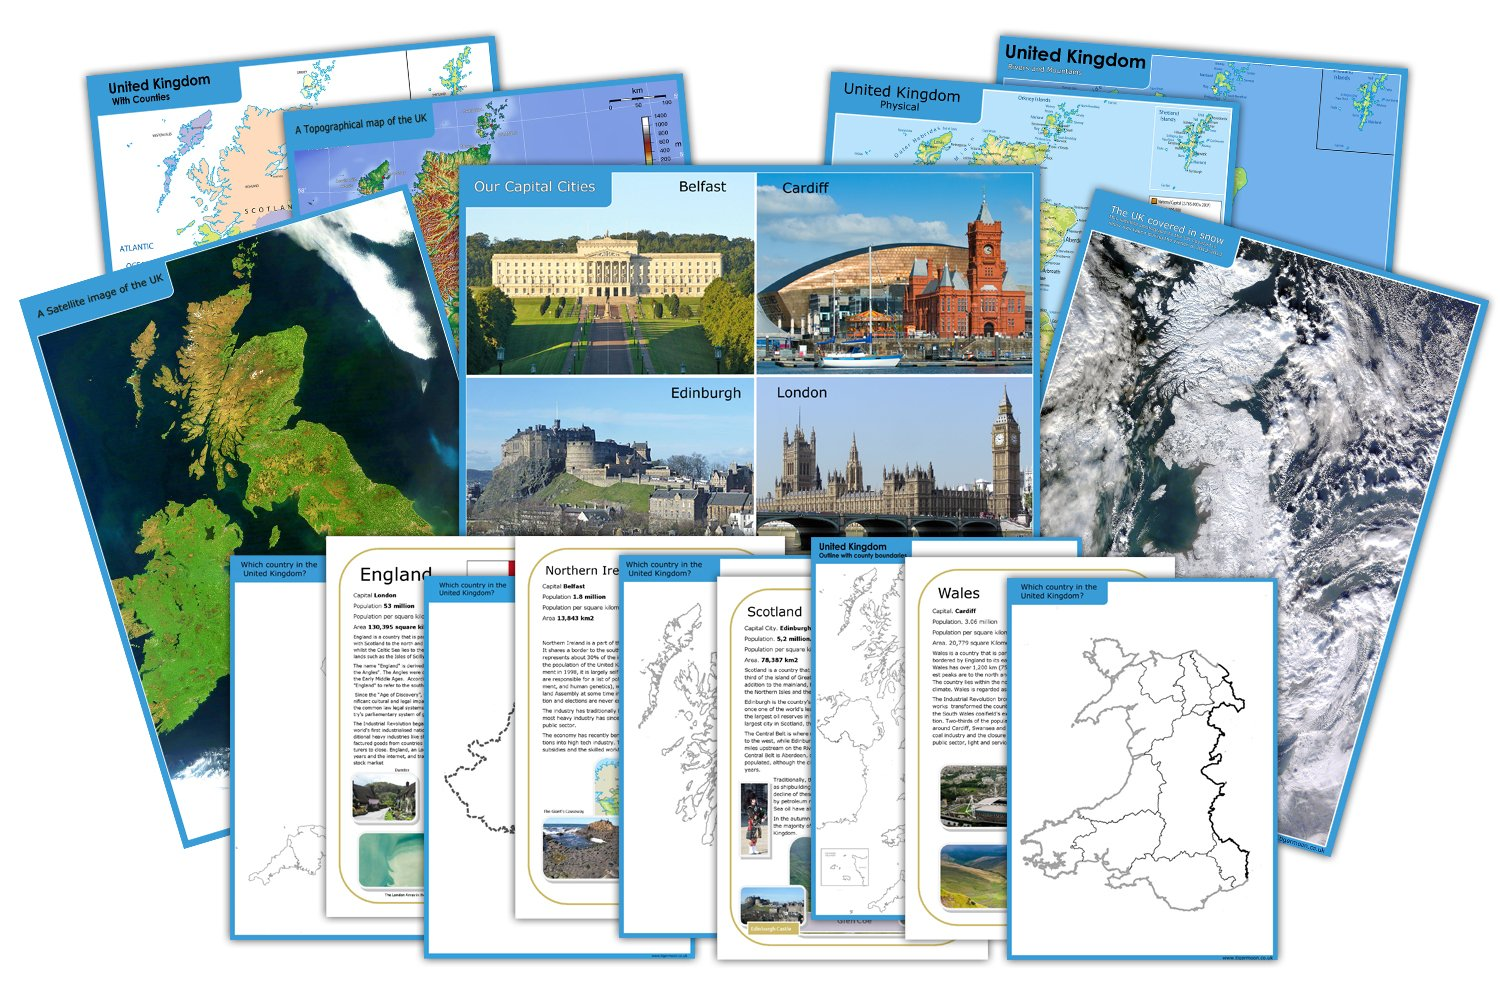 United kingdom teach display map classroom pack 2014 geography united kingdom teach display map classroom pack 2014 geography curriculum ks1 amazon office products gumiabroncs Choice Image